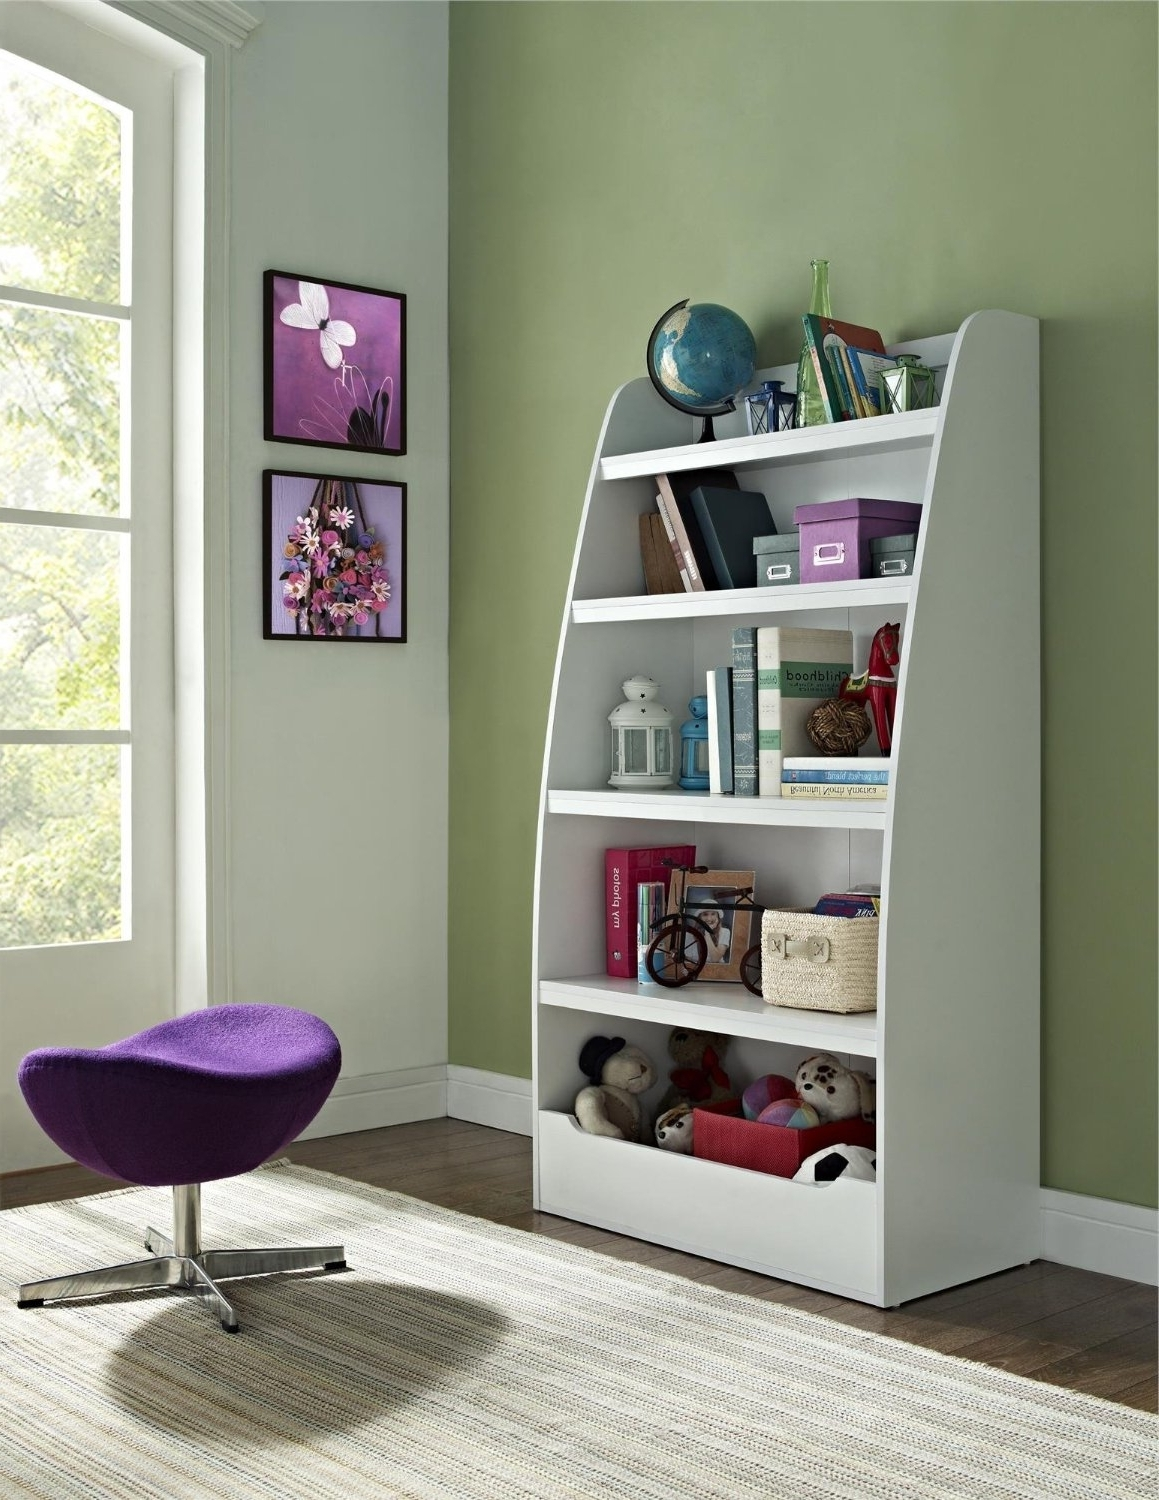 Top 12 Kids Bookcase And Bookshelves – Review With Favorite Kids Bookcases (View 12 of 15)